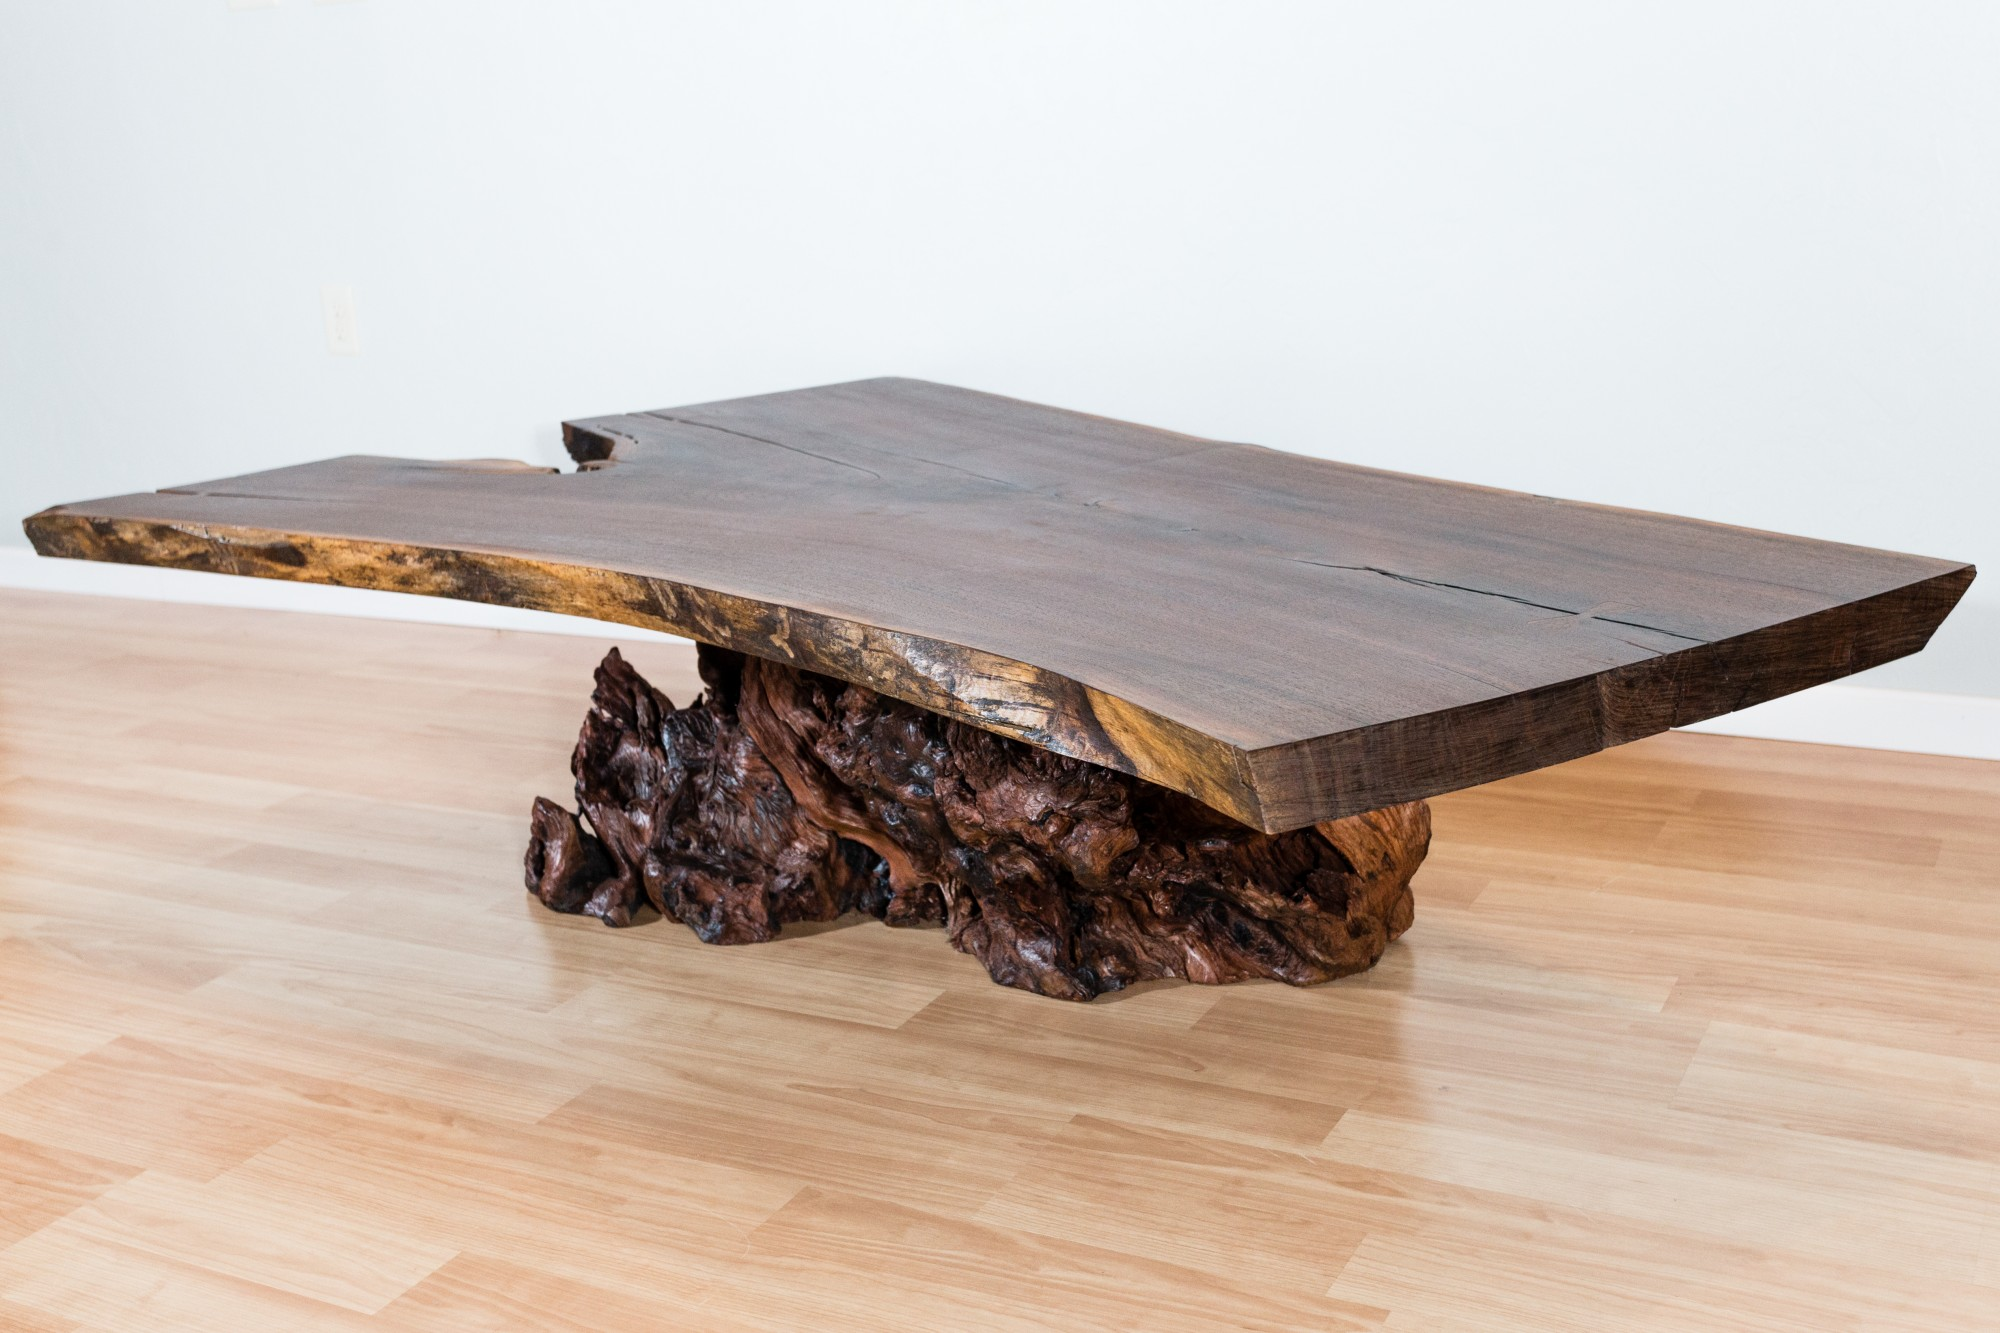 Save 10% on Live Edge Furniture at GenCraft Designs this November